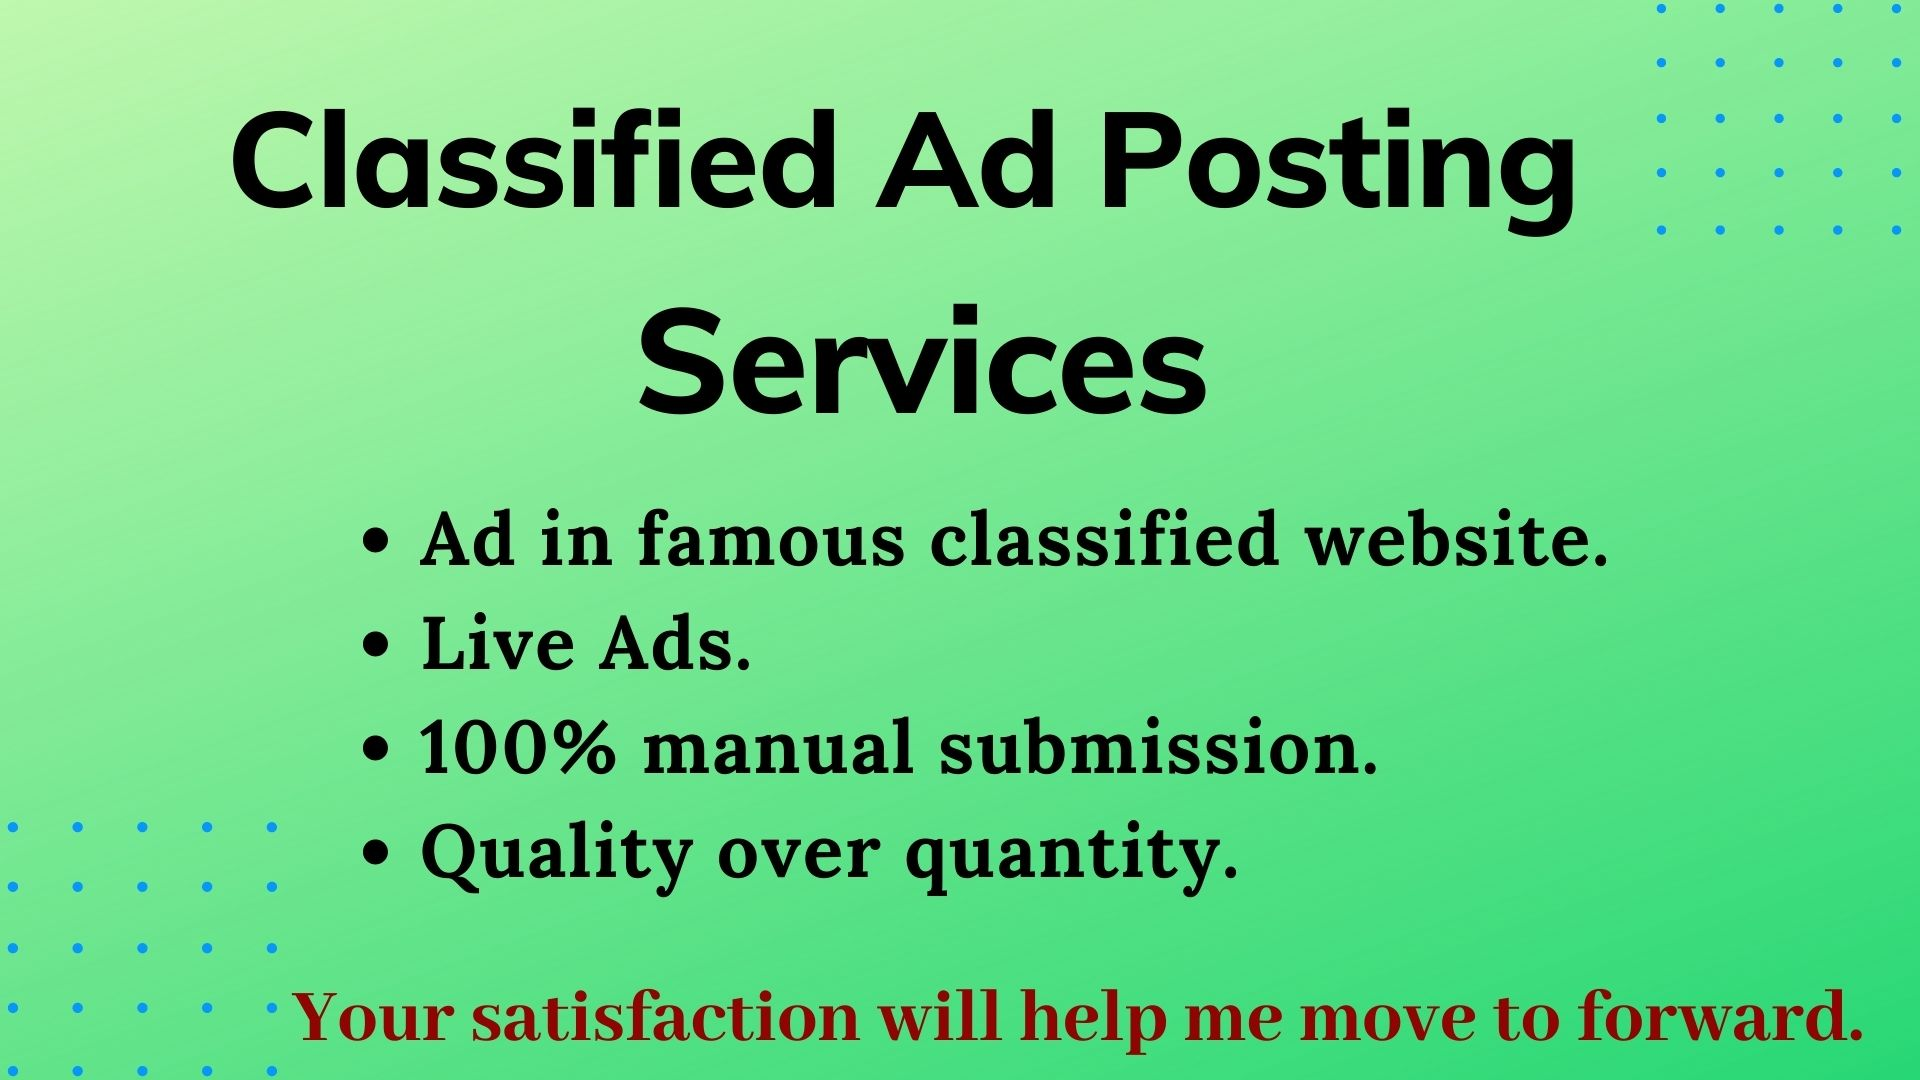 I Will Do 100+ Manual Classified Ads Posting On Top Ad Websites